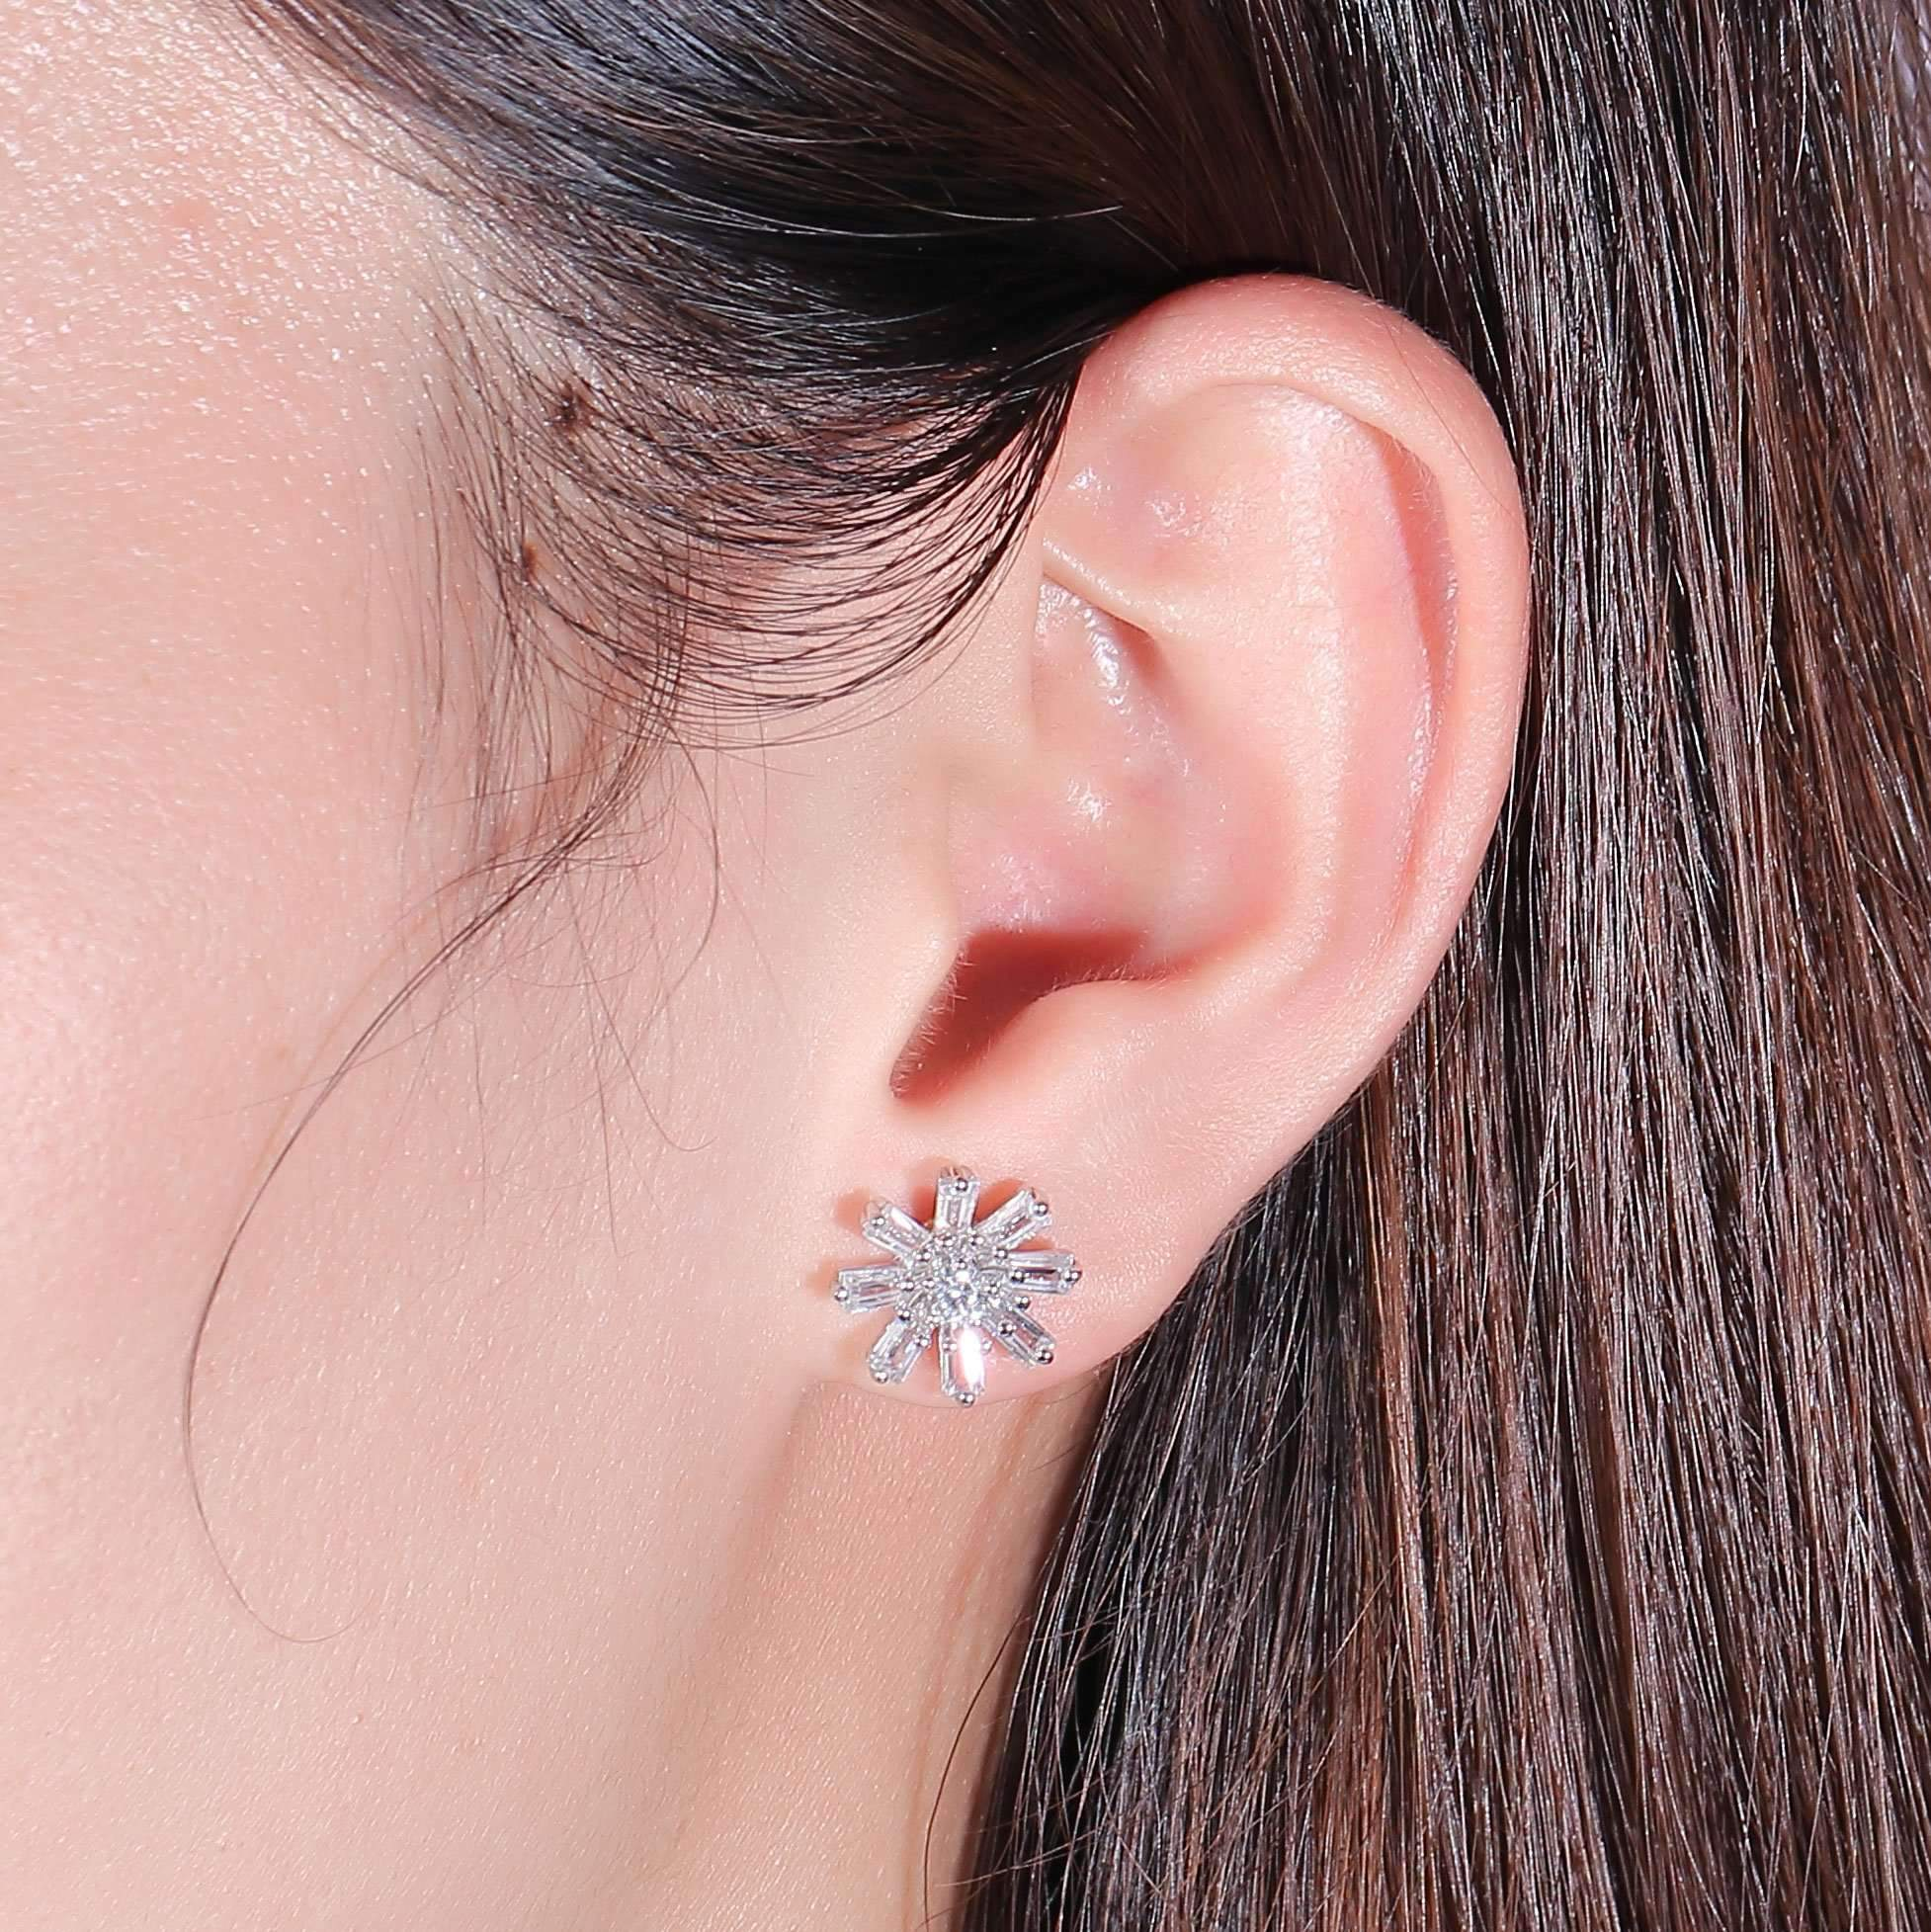 doveggs moissanite earring studs 10k white gold post 0.2 carat center 3mm round moissanite platinum plated silver push back with accents for women - DovEggs-Seattle